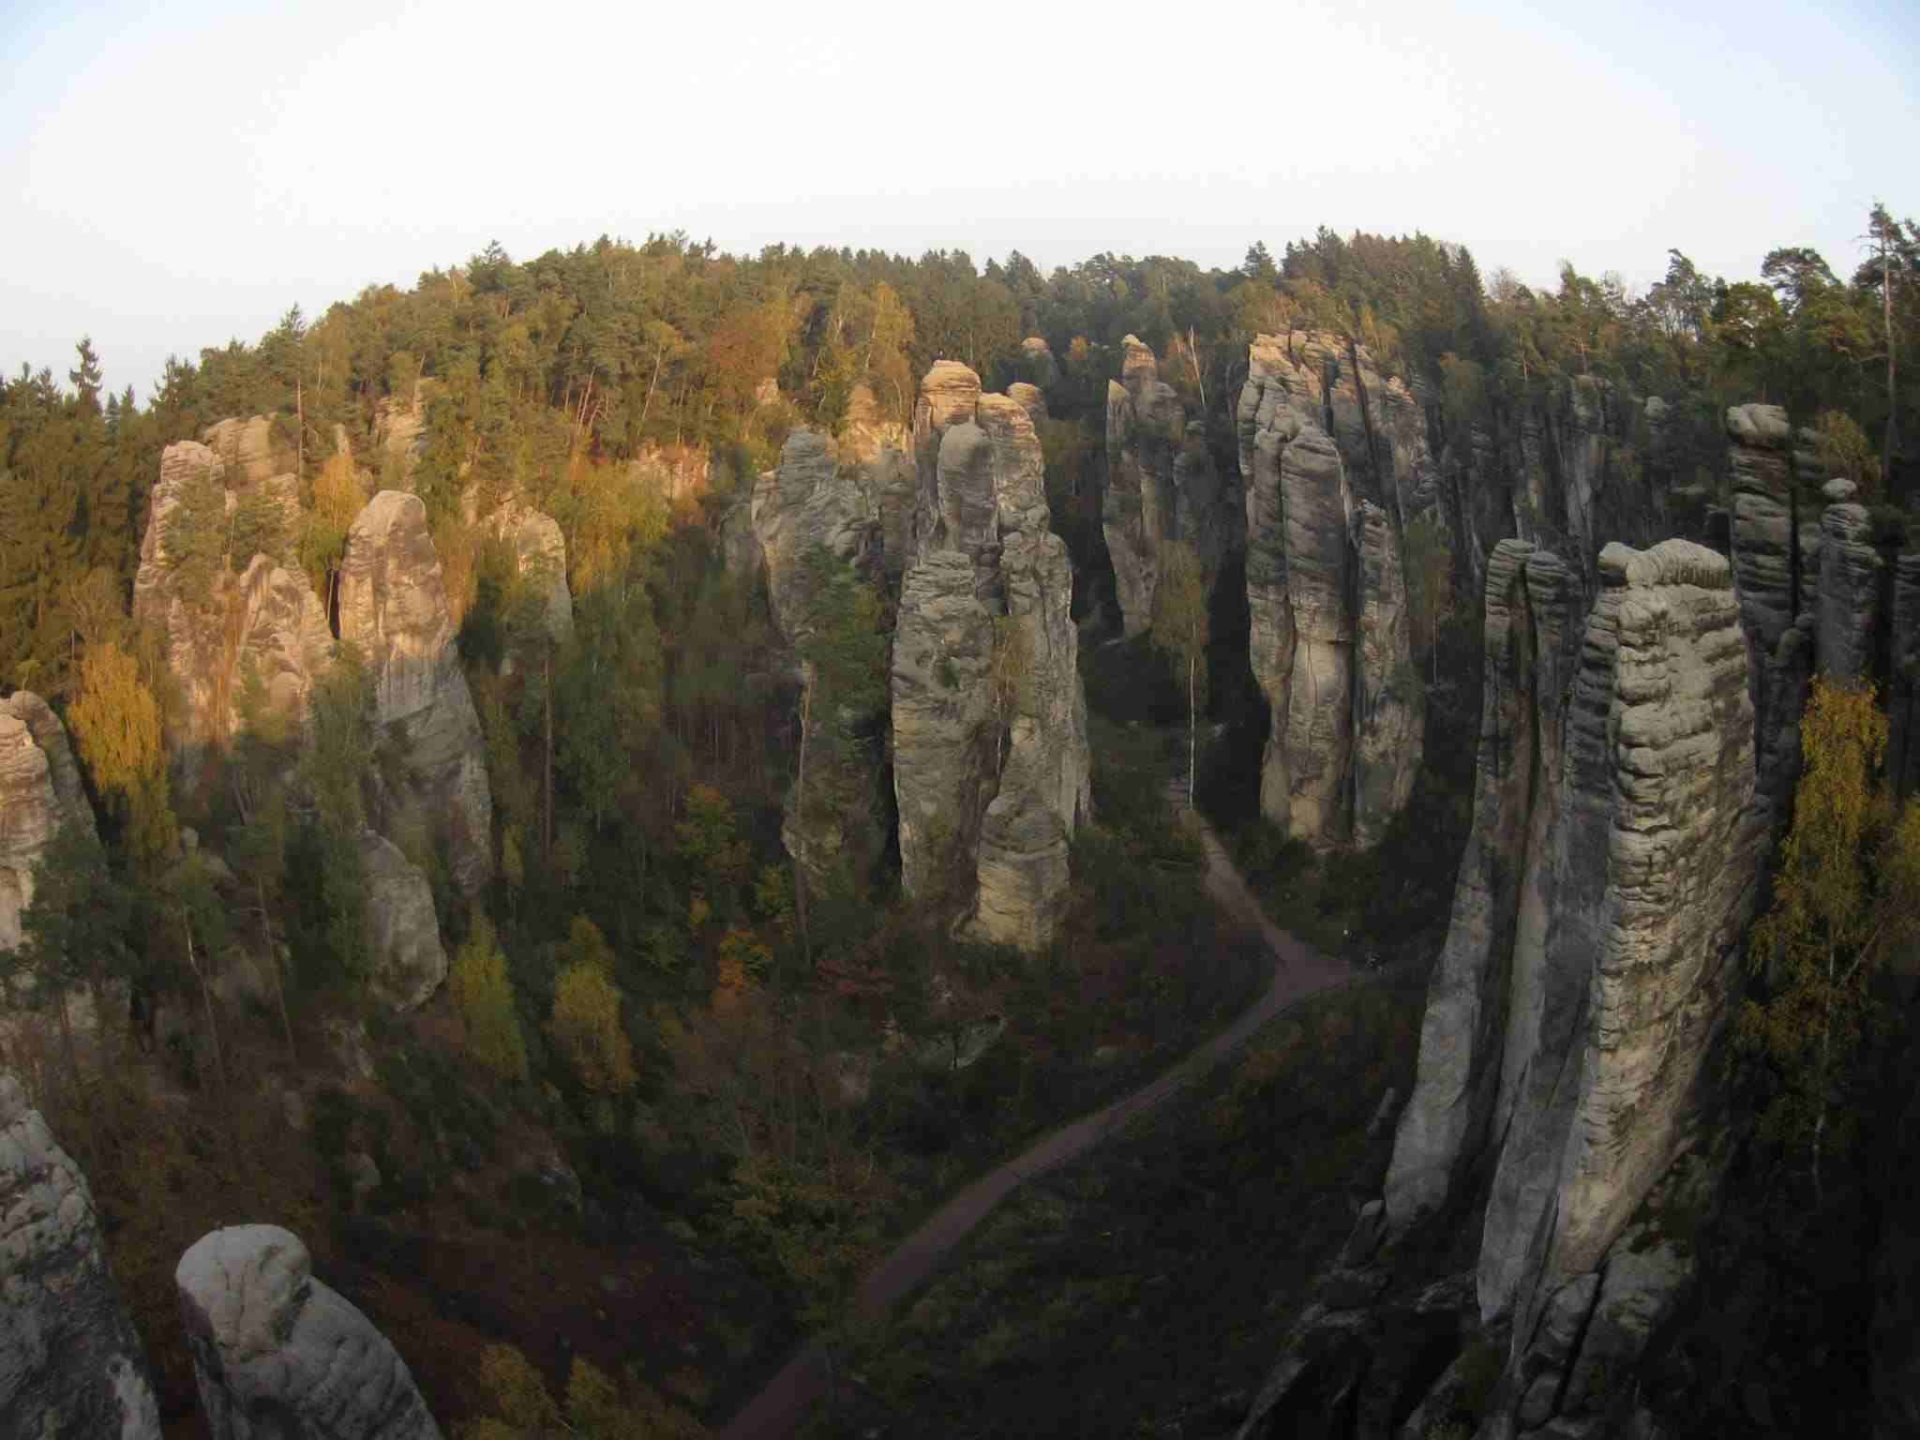 Sandstone climbing day trips in the Czech Republic